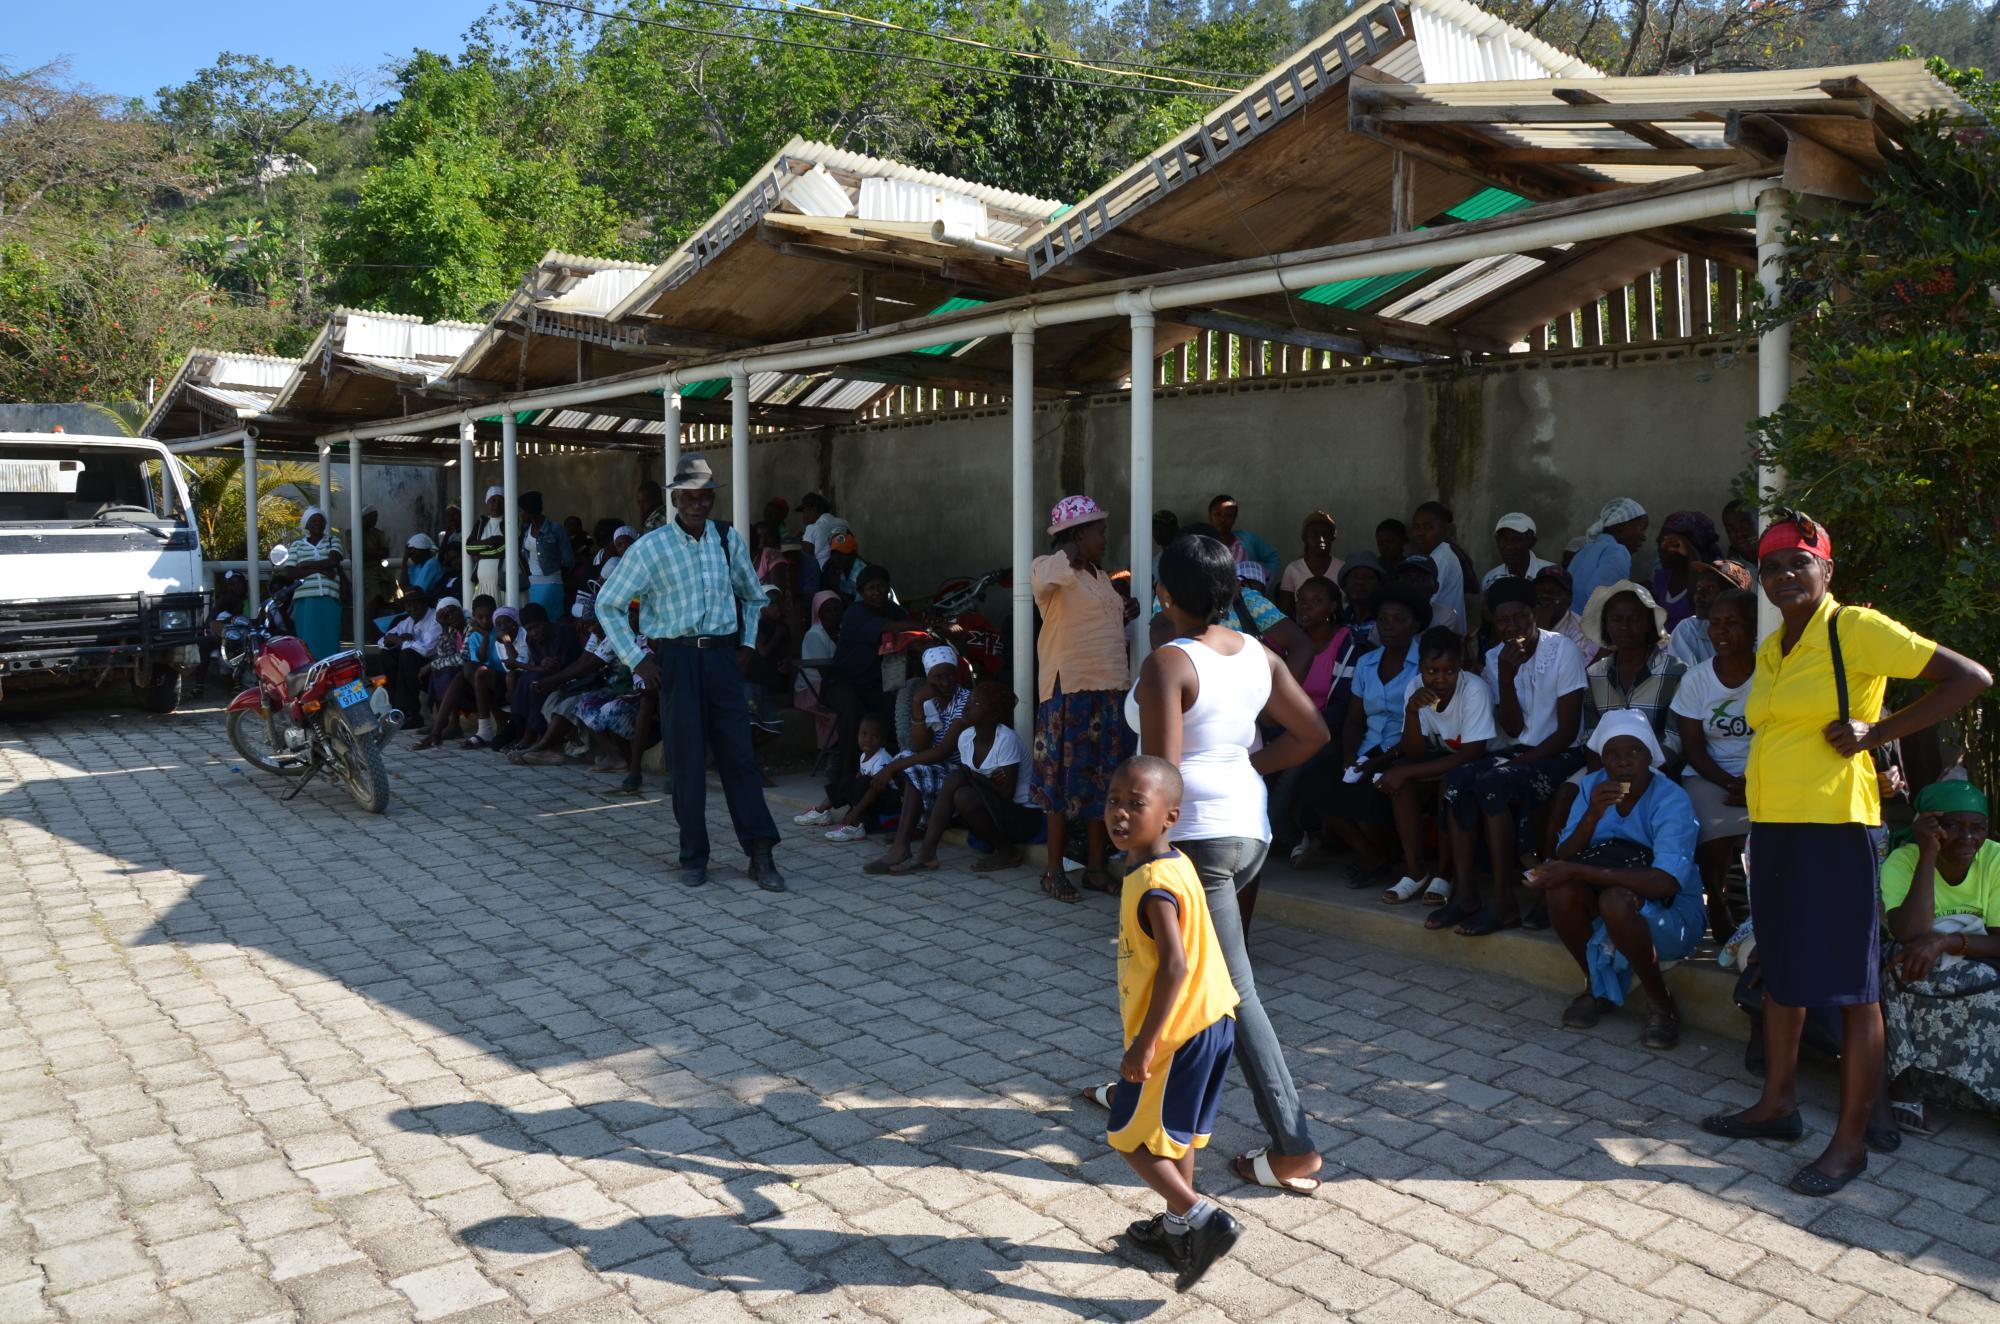 Haiti2013_Clinic_courtyard_waiting_area_755.jpg